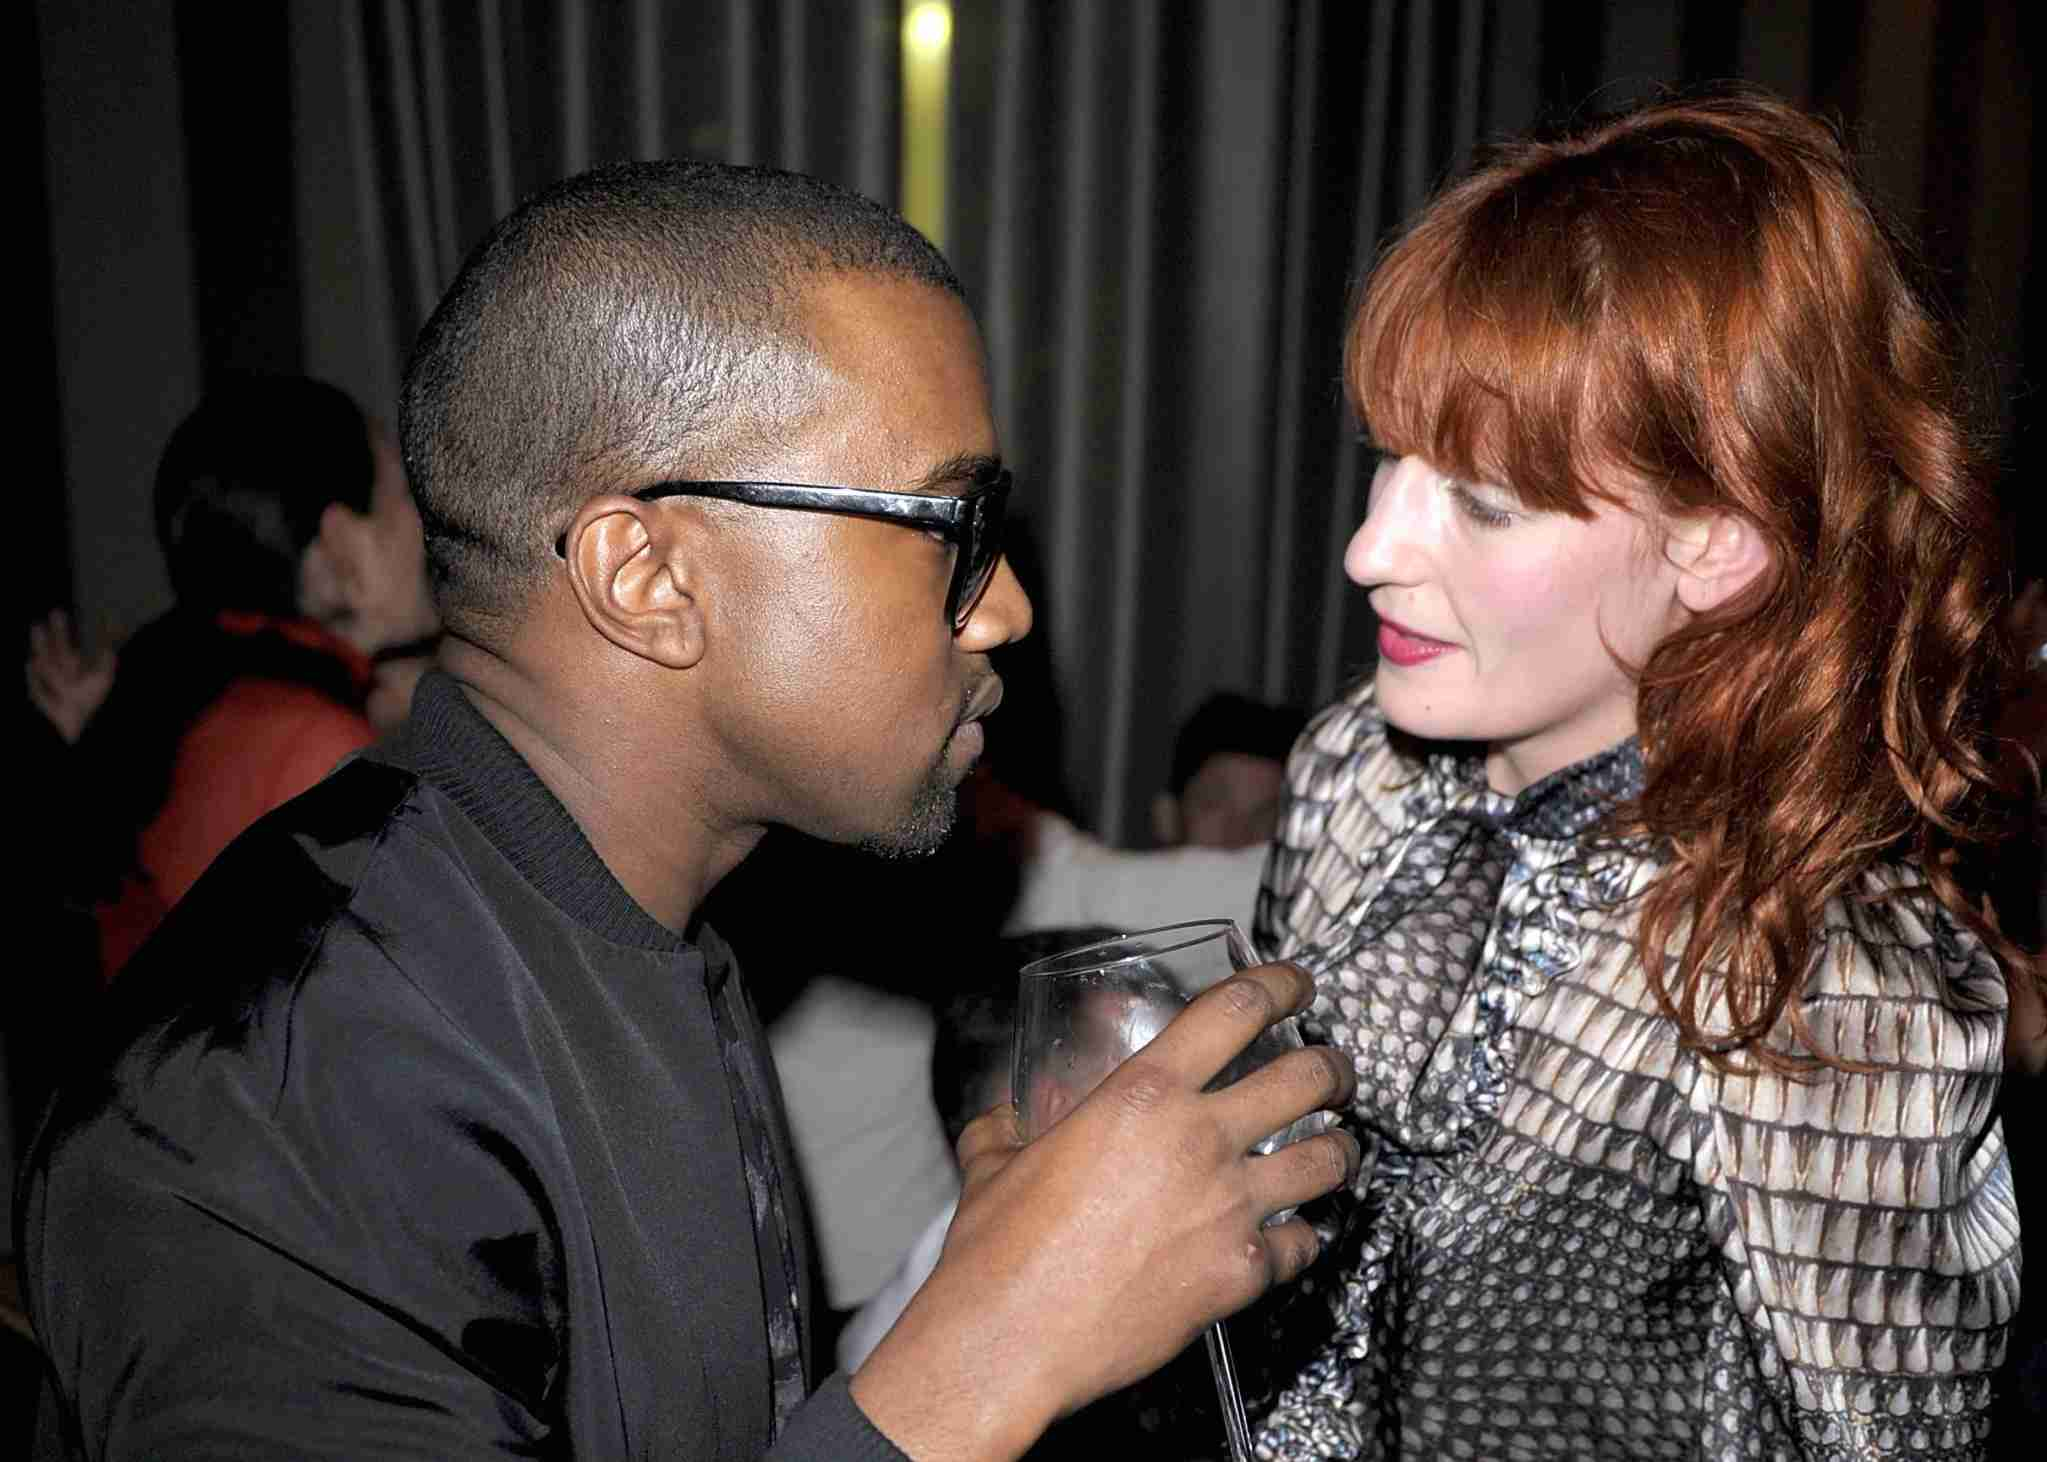 Kanye West, dirty martinis and one cinnamon tea light added up to a hotel room fire for Florence Welch. Image courtesy of Trago/WireImage via Getty Images.